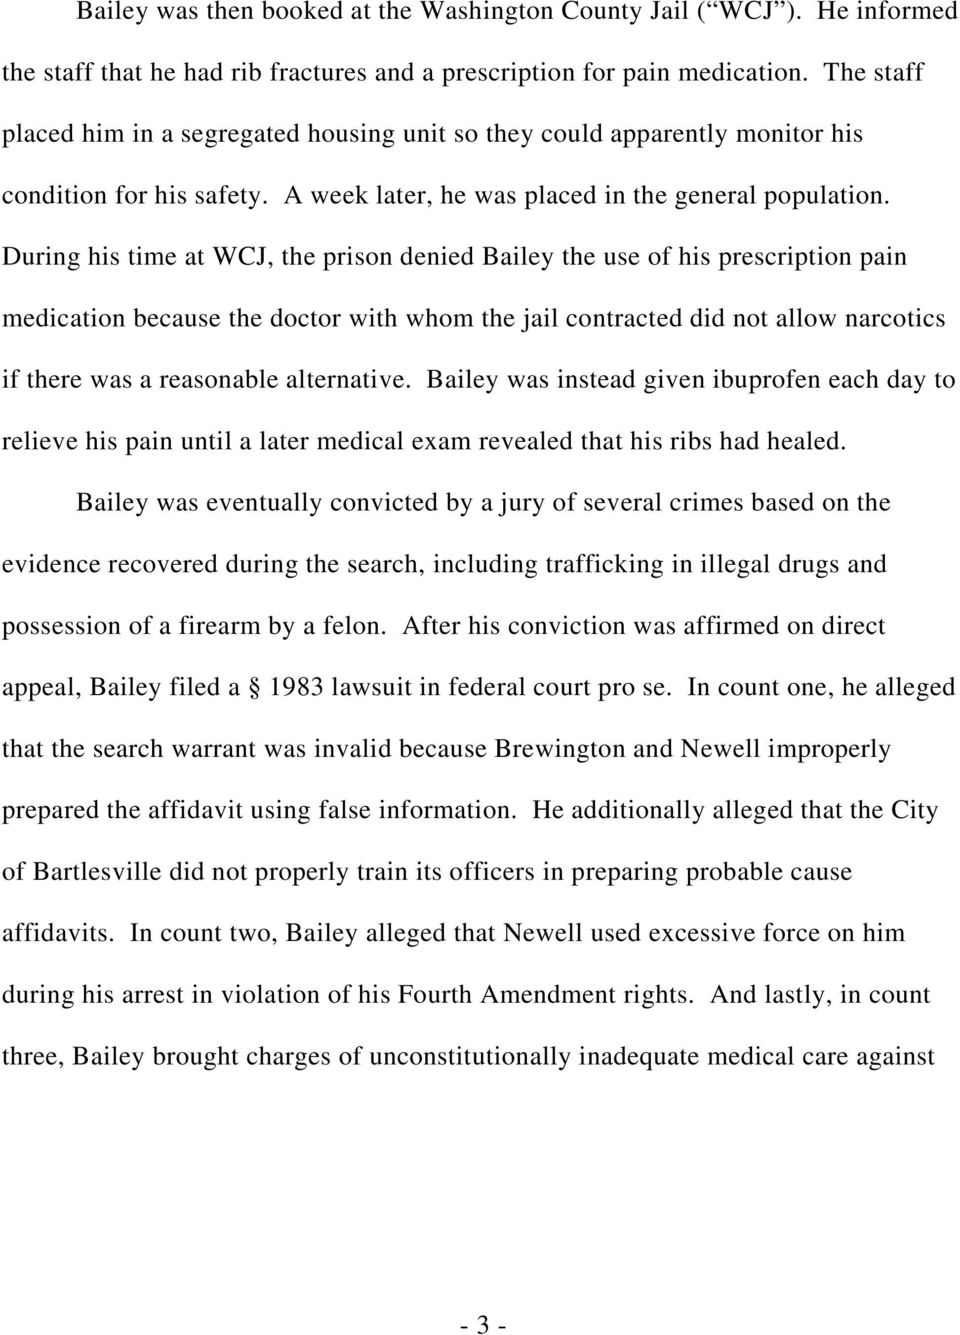 During his time at WCJ, the prison denied Bailey the use of his prescription pain medication because the doctor with whom the jail contracted did not allow narcotics if there was a reasonable